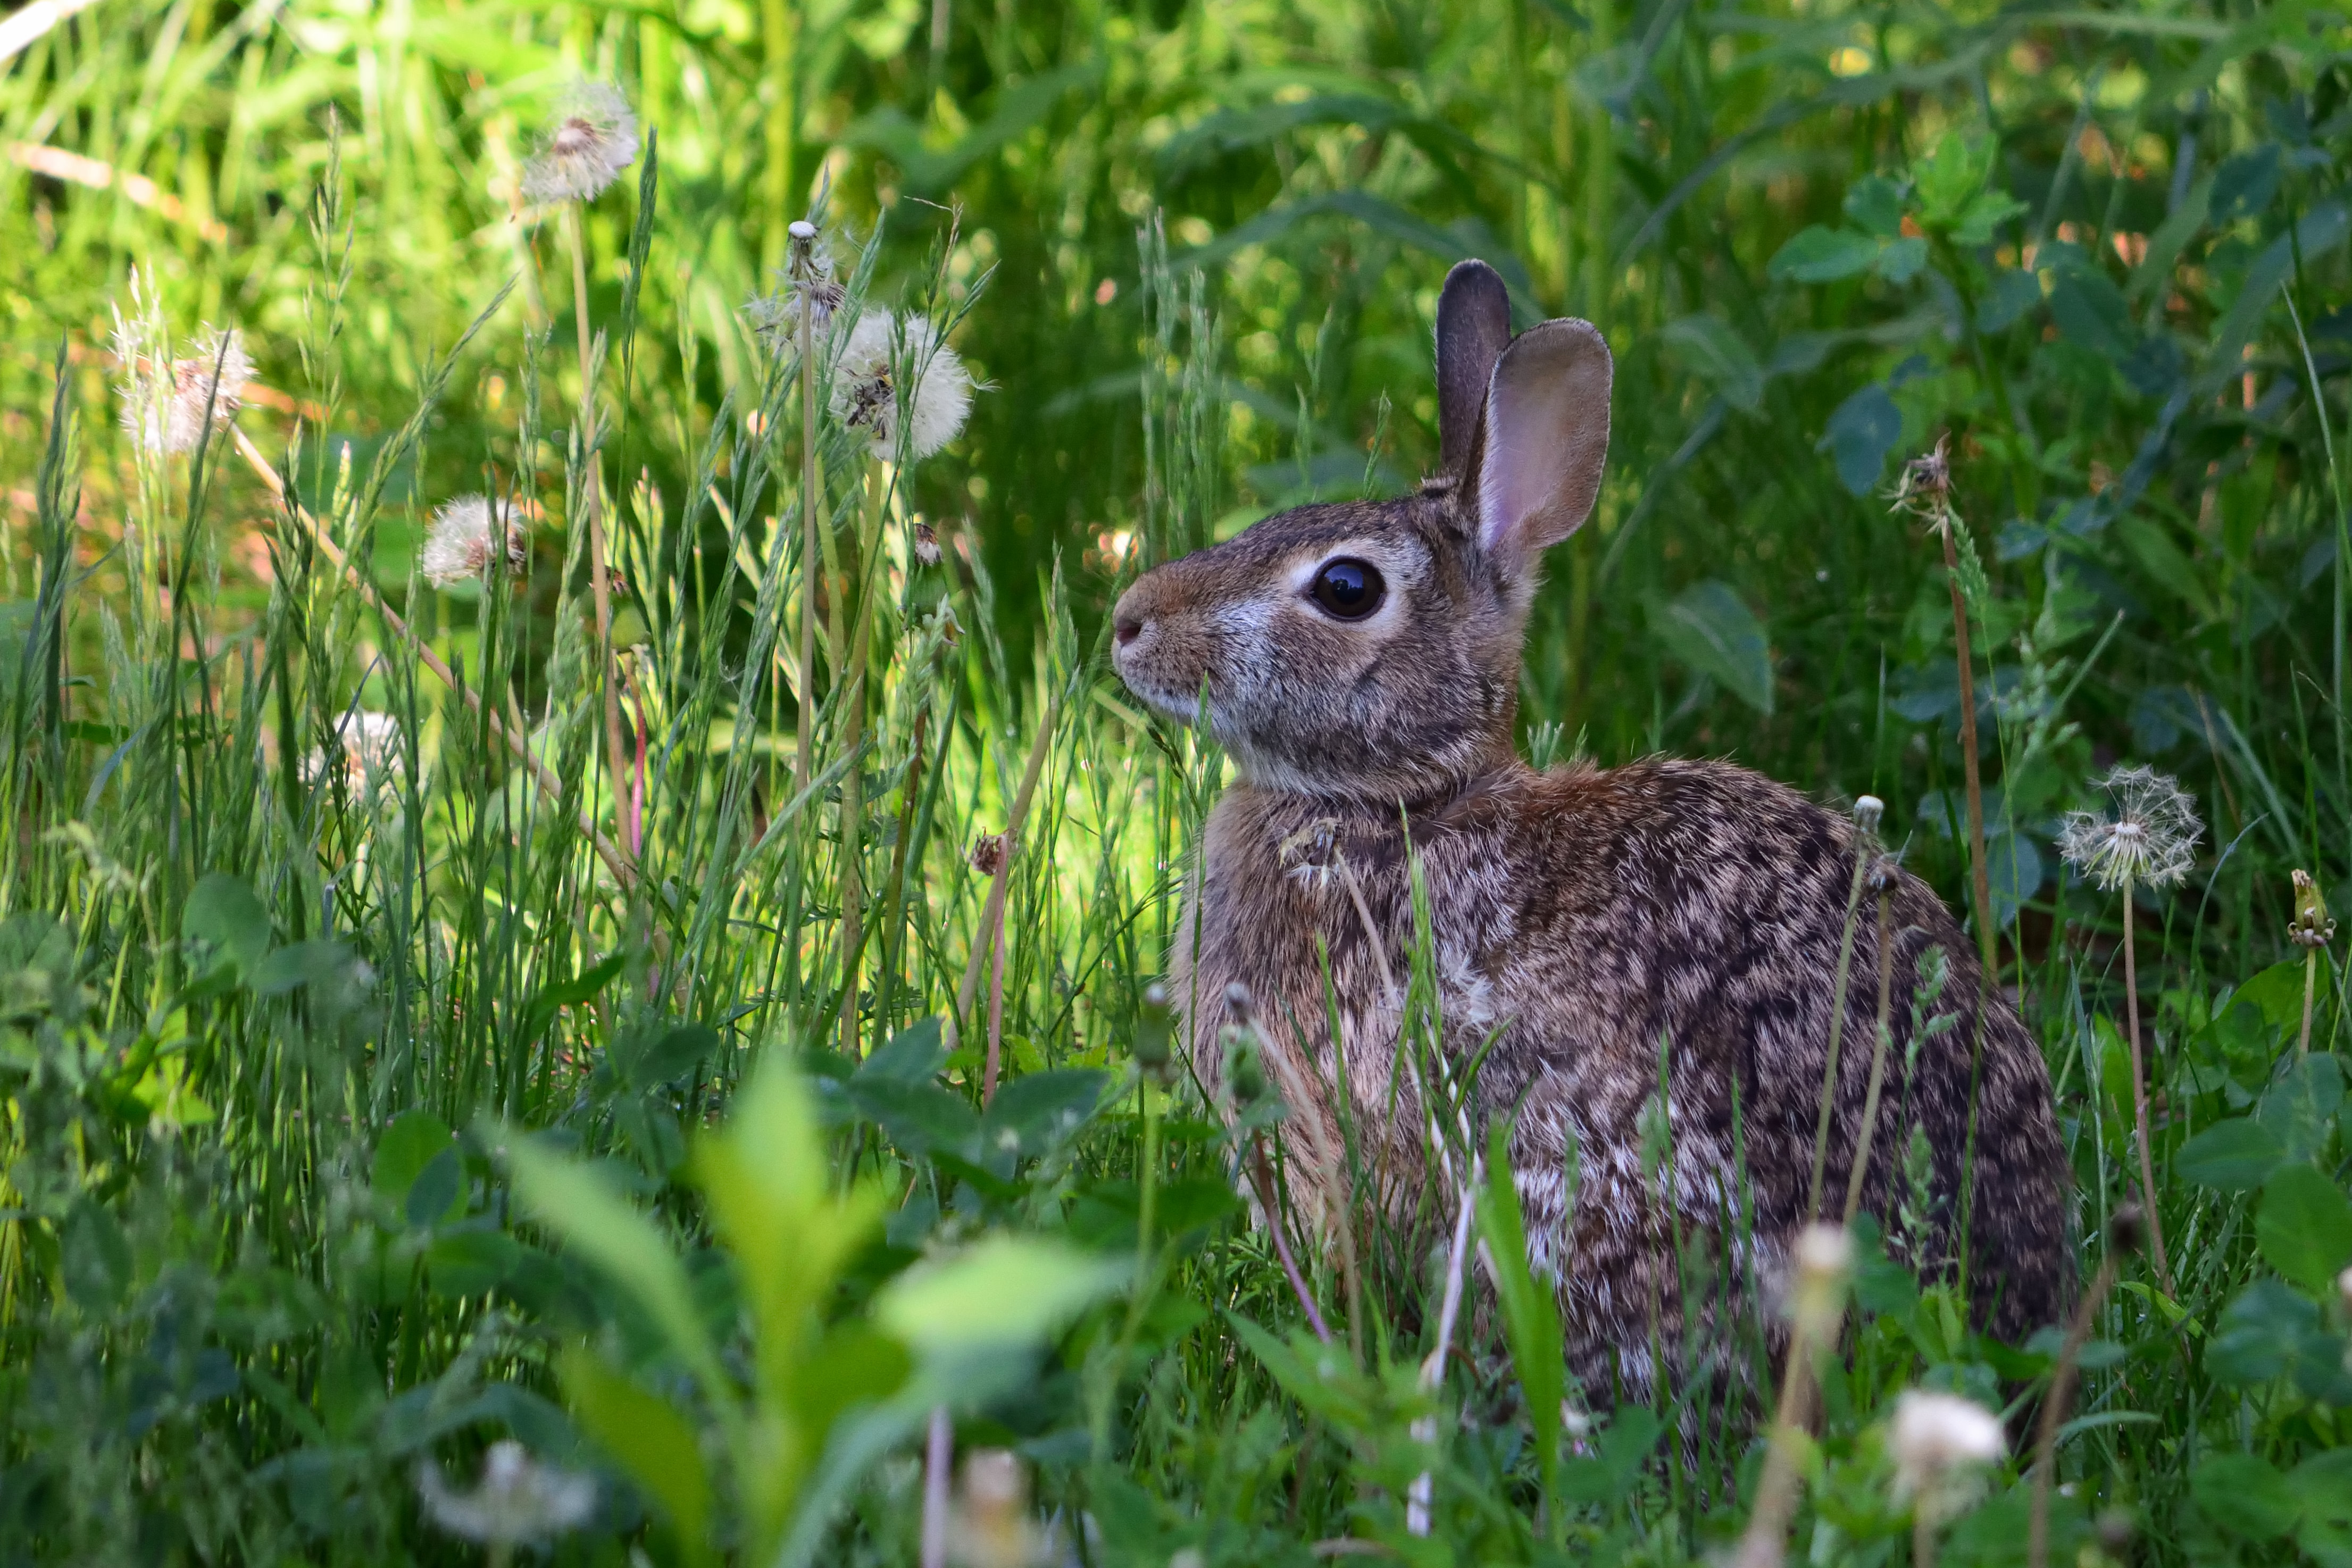 156872 download wallpaper Animals, Rabbit, Animal, Fluffy, Grass screensavers and pictures for free